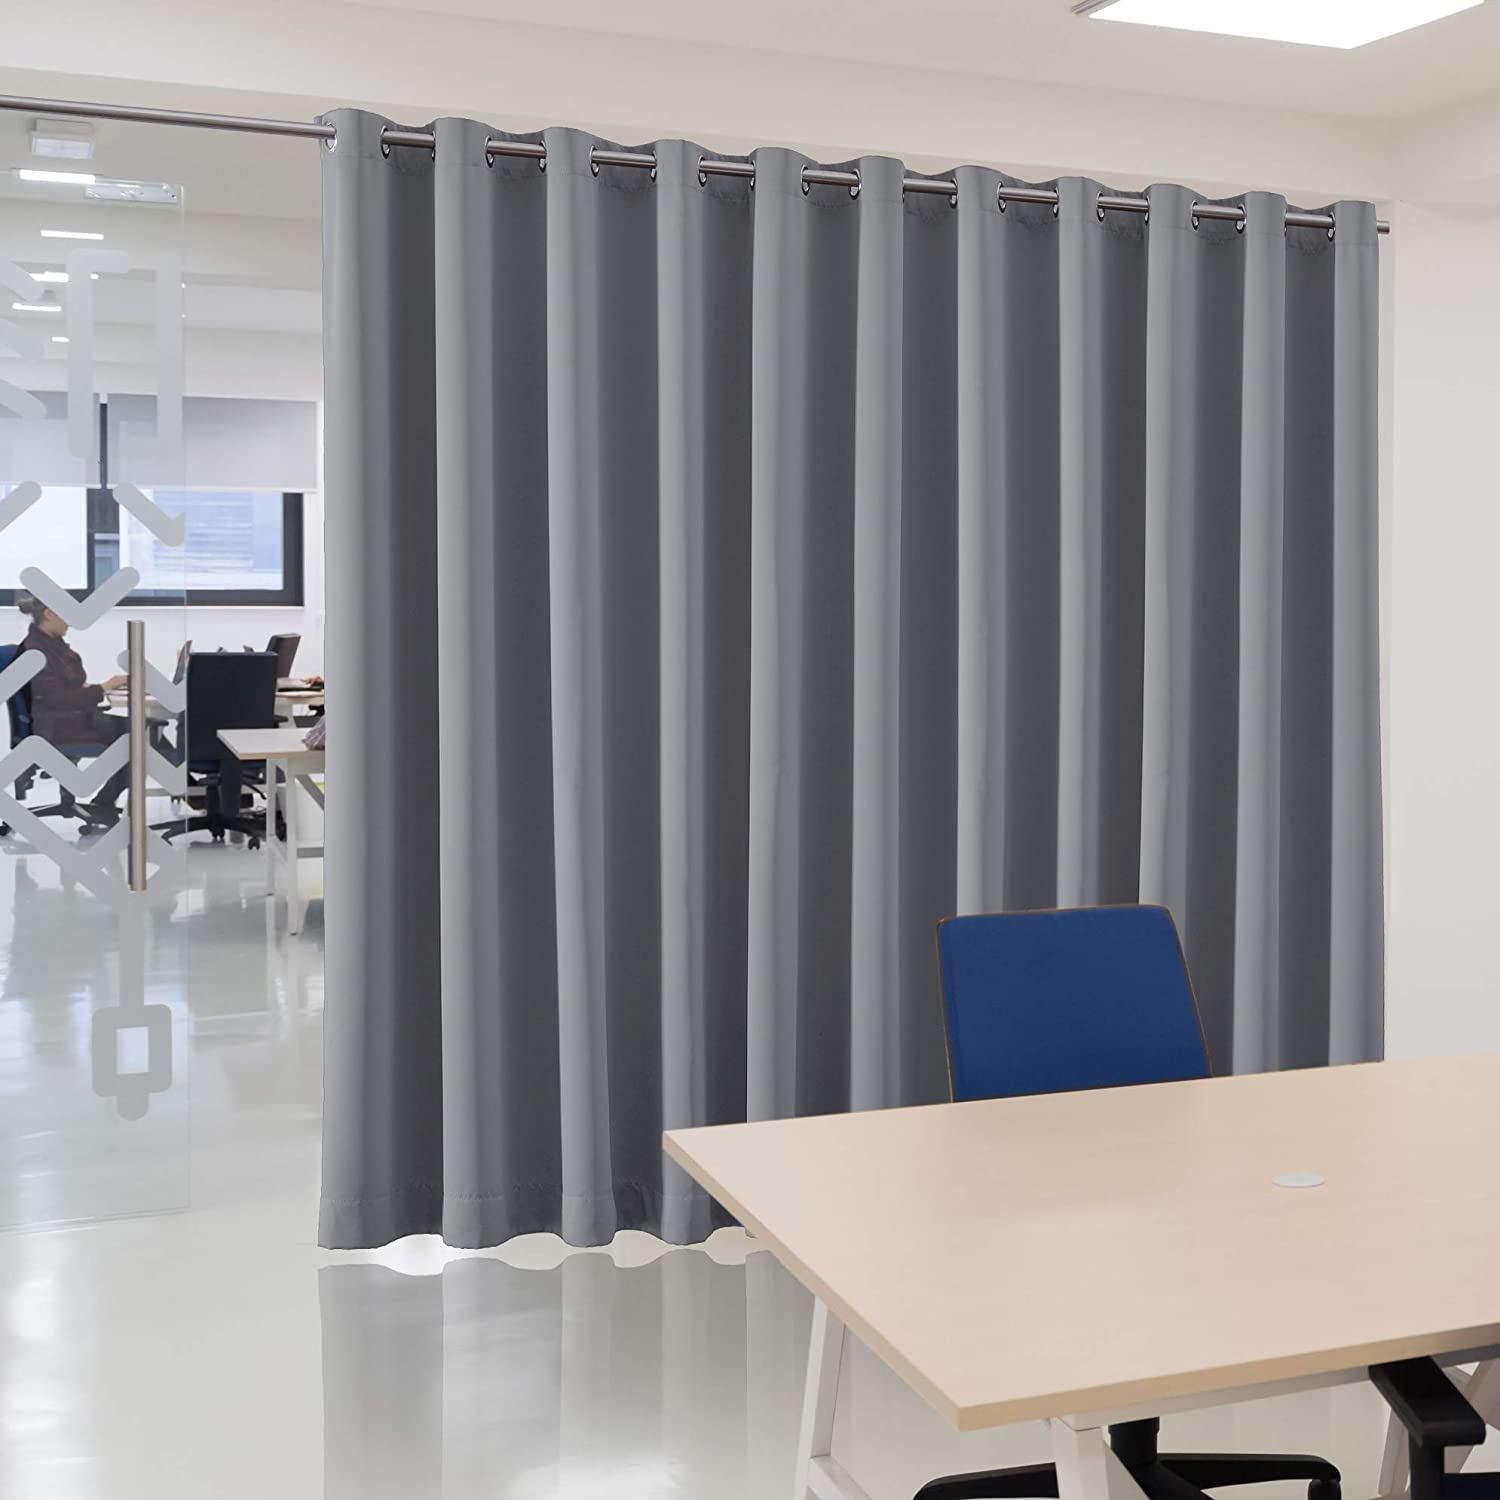 bluCOASTLINE Room Divider Curtain Extra Wide Blackout Curtain Panel Multiuse Premium Heavyweight Thermal Insulated Space Division Total Privacy Protection,8.5ft Wide x 7ft Tall Black